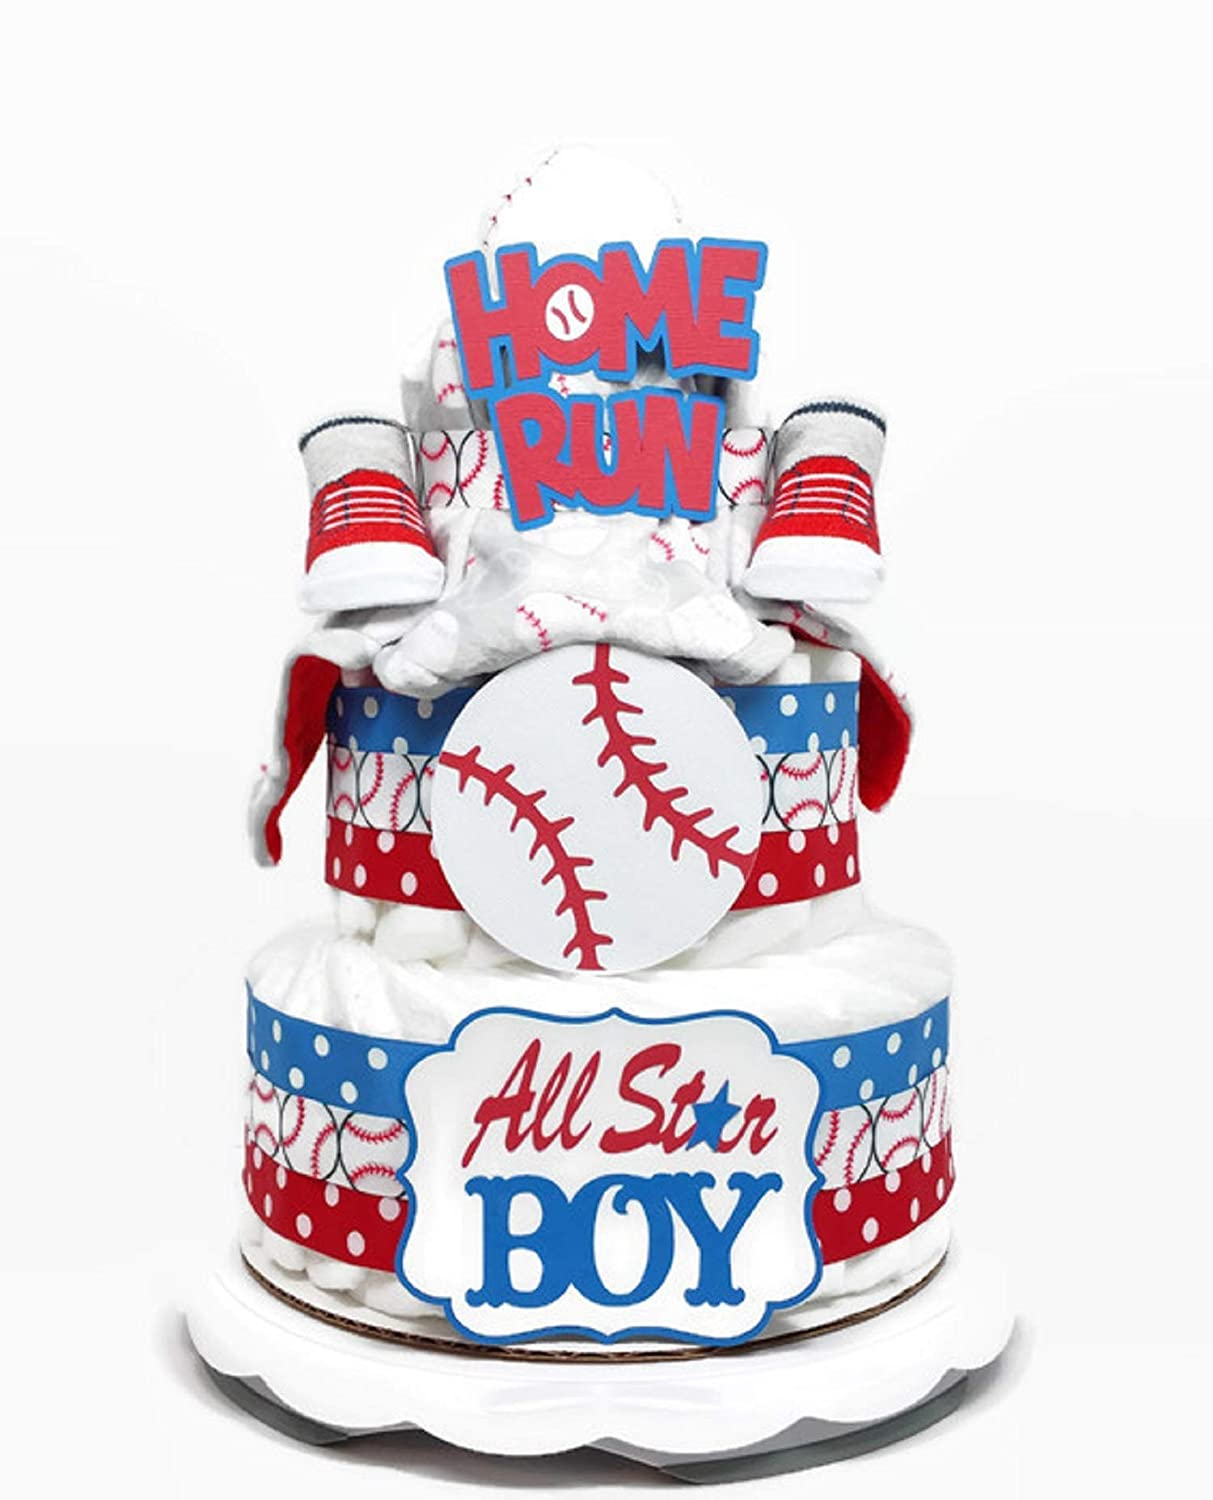 Enjoyable Amazon Com All Star Baseball Diaper Cake For Boy Baby Shower Funny Birthday Cards Online Bapapcheapnameinfo